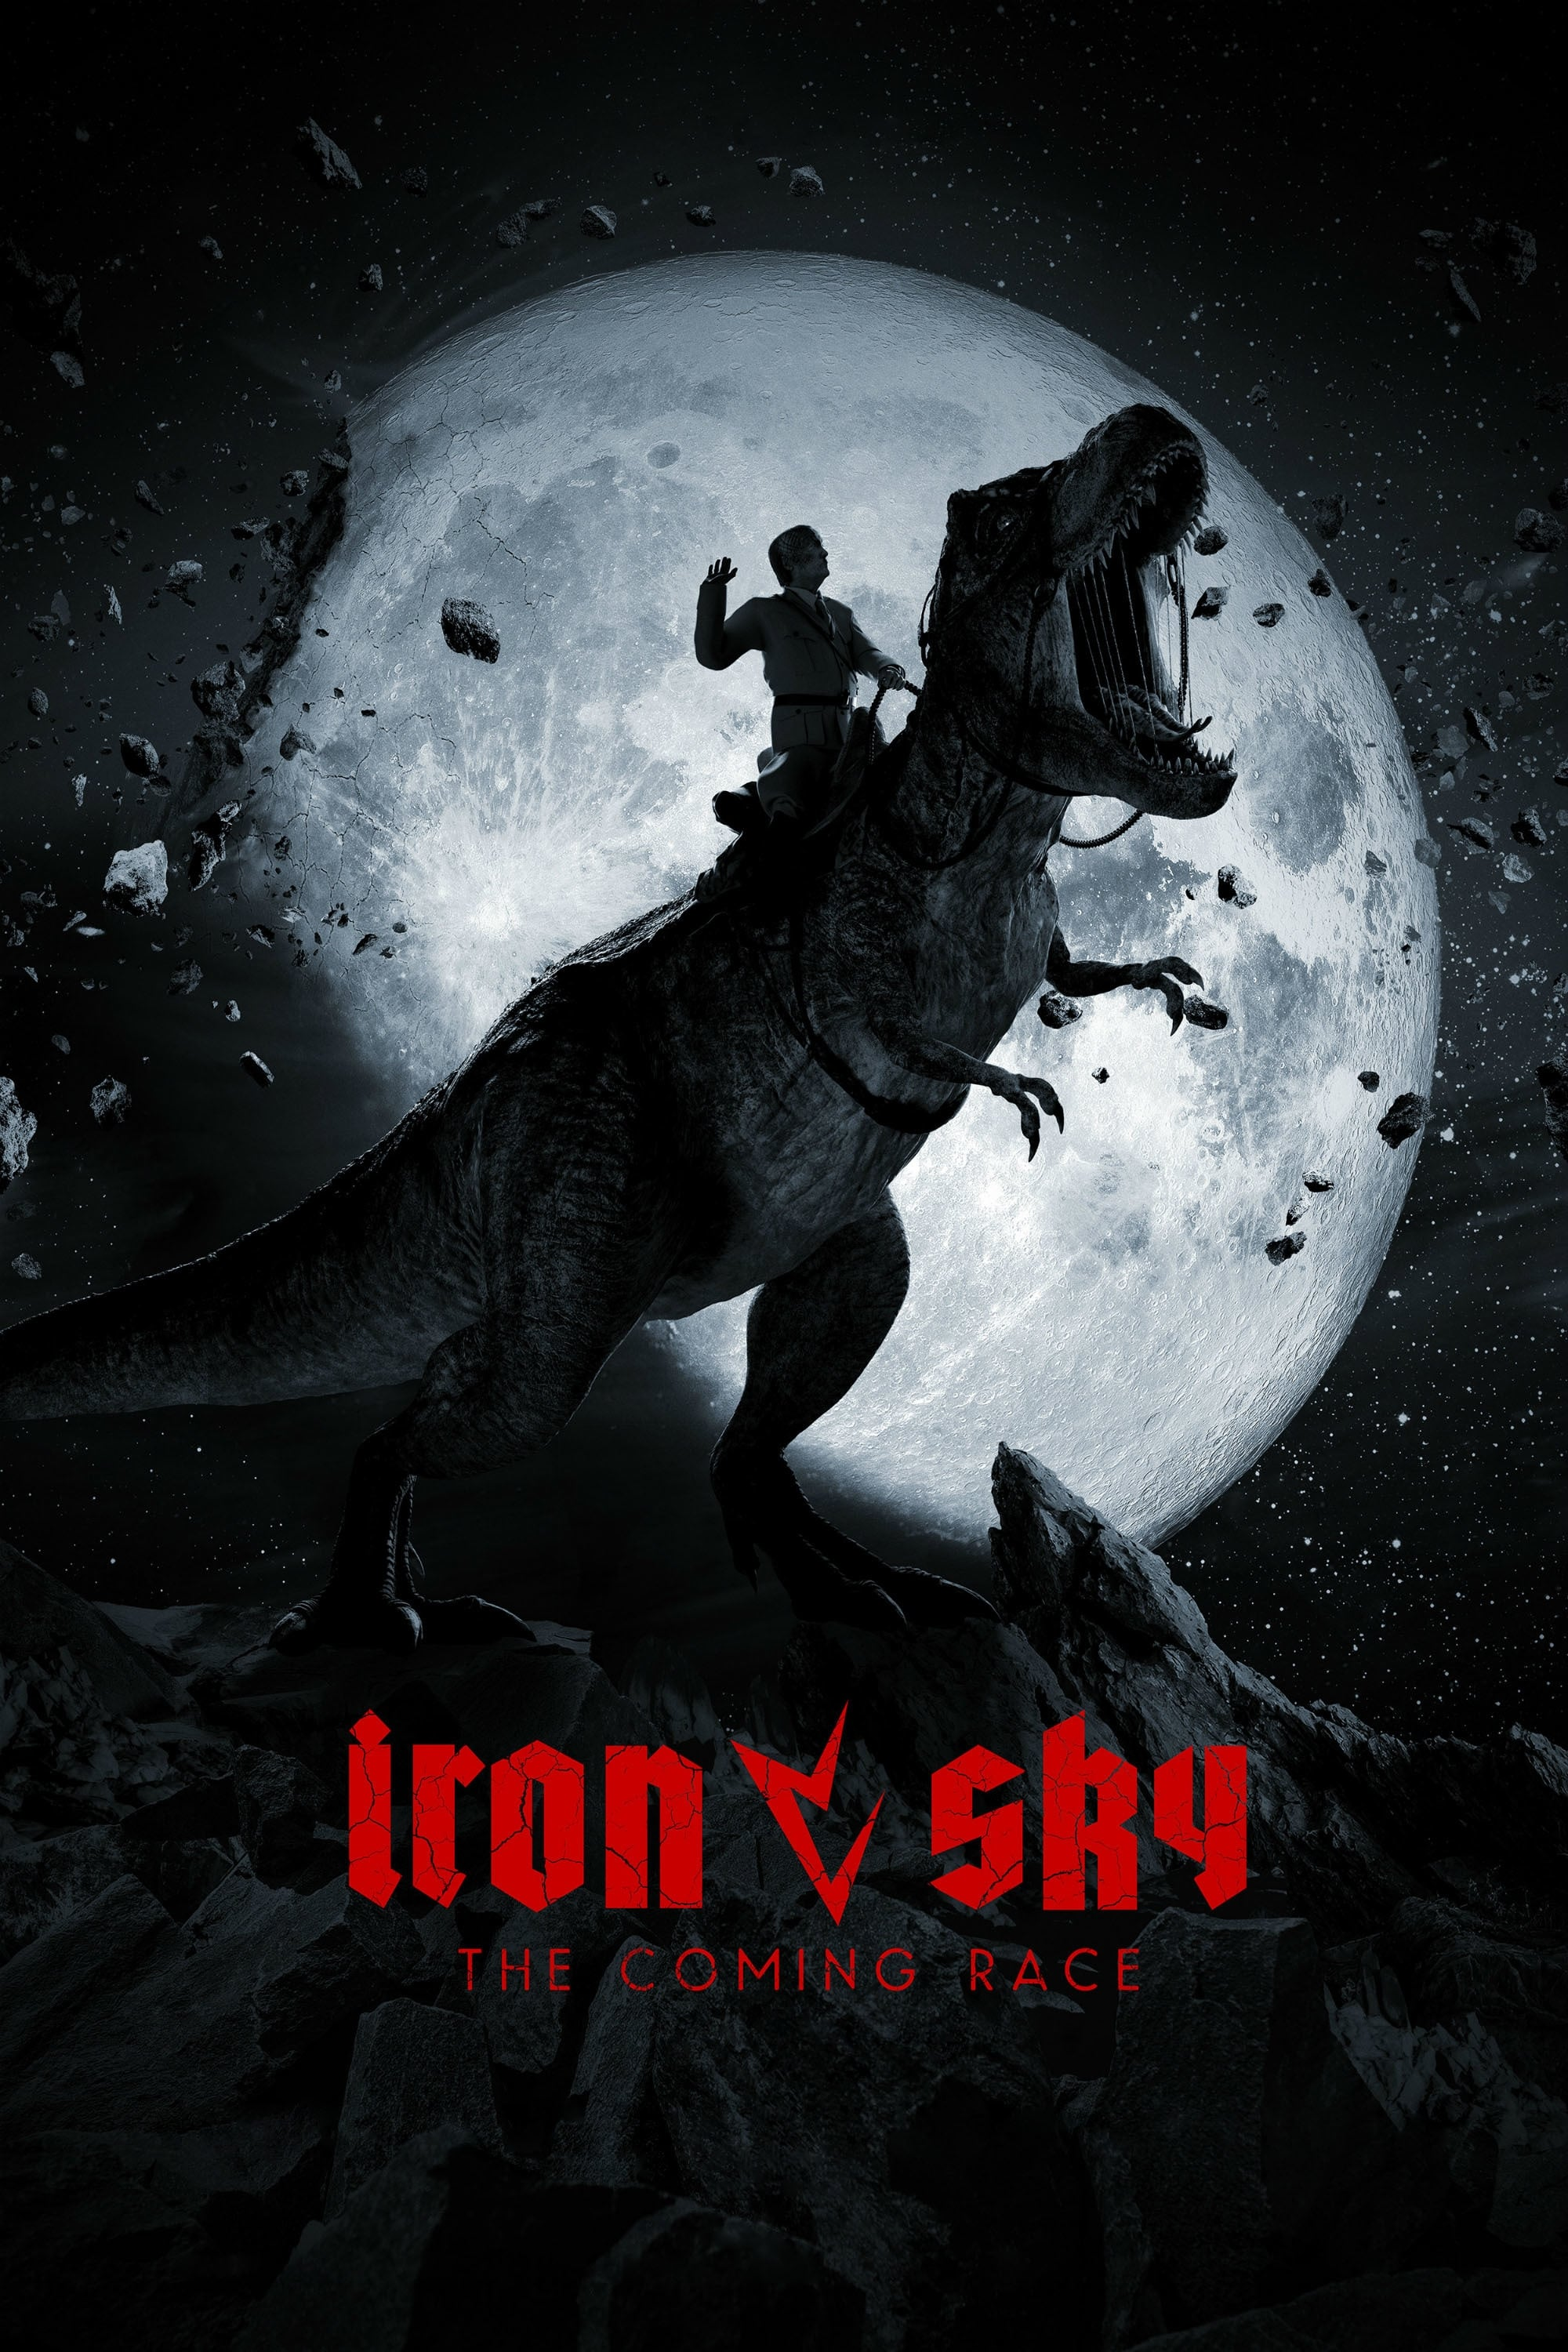 iron sky deutsch ganzer film